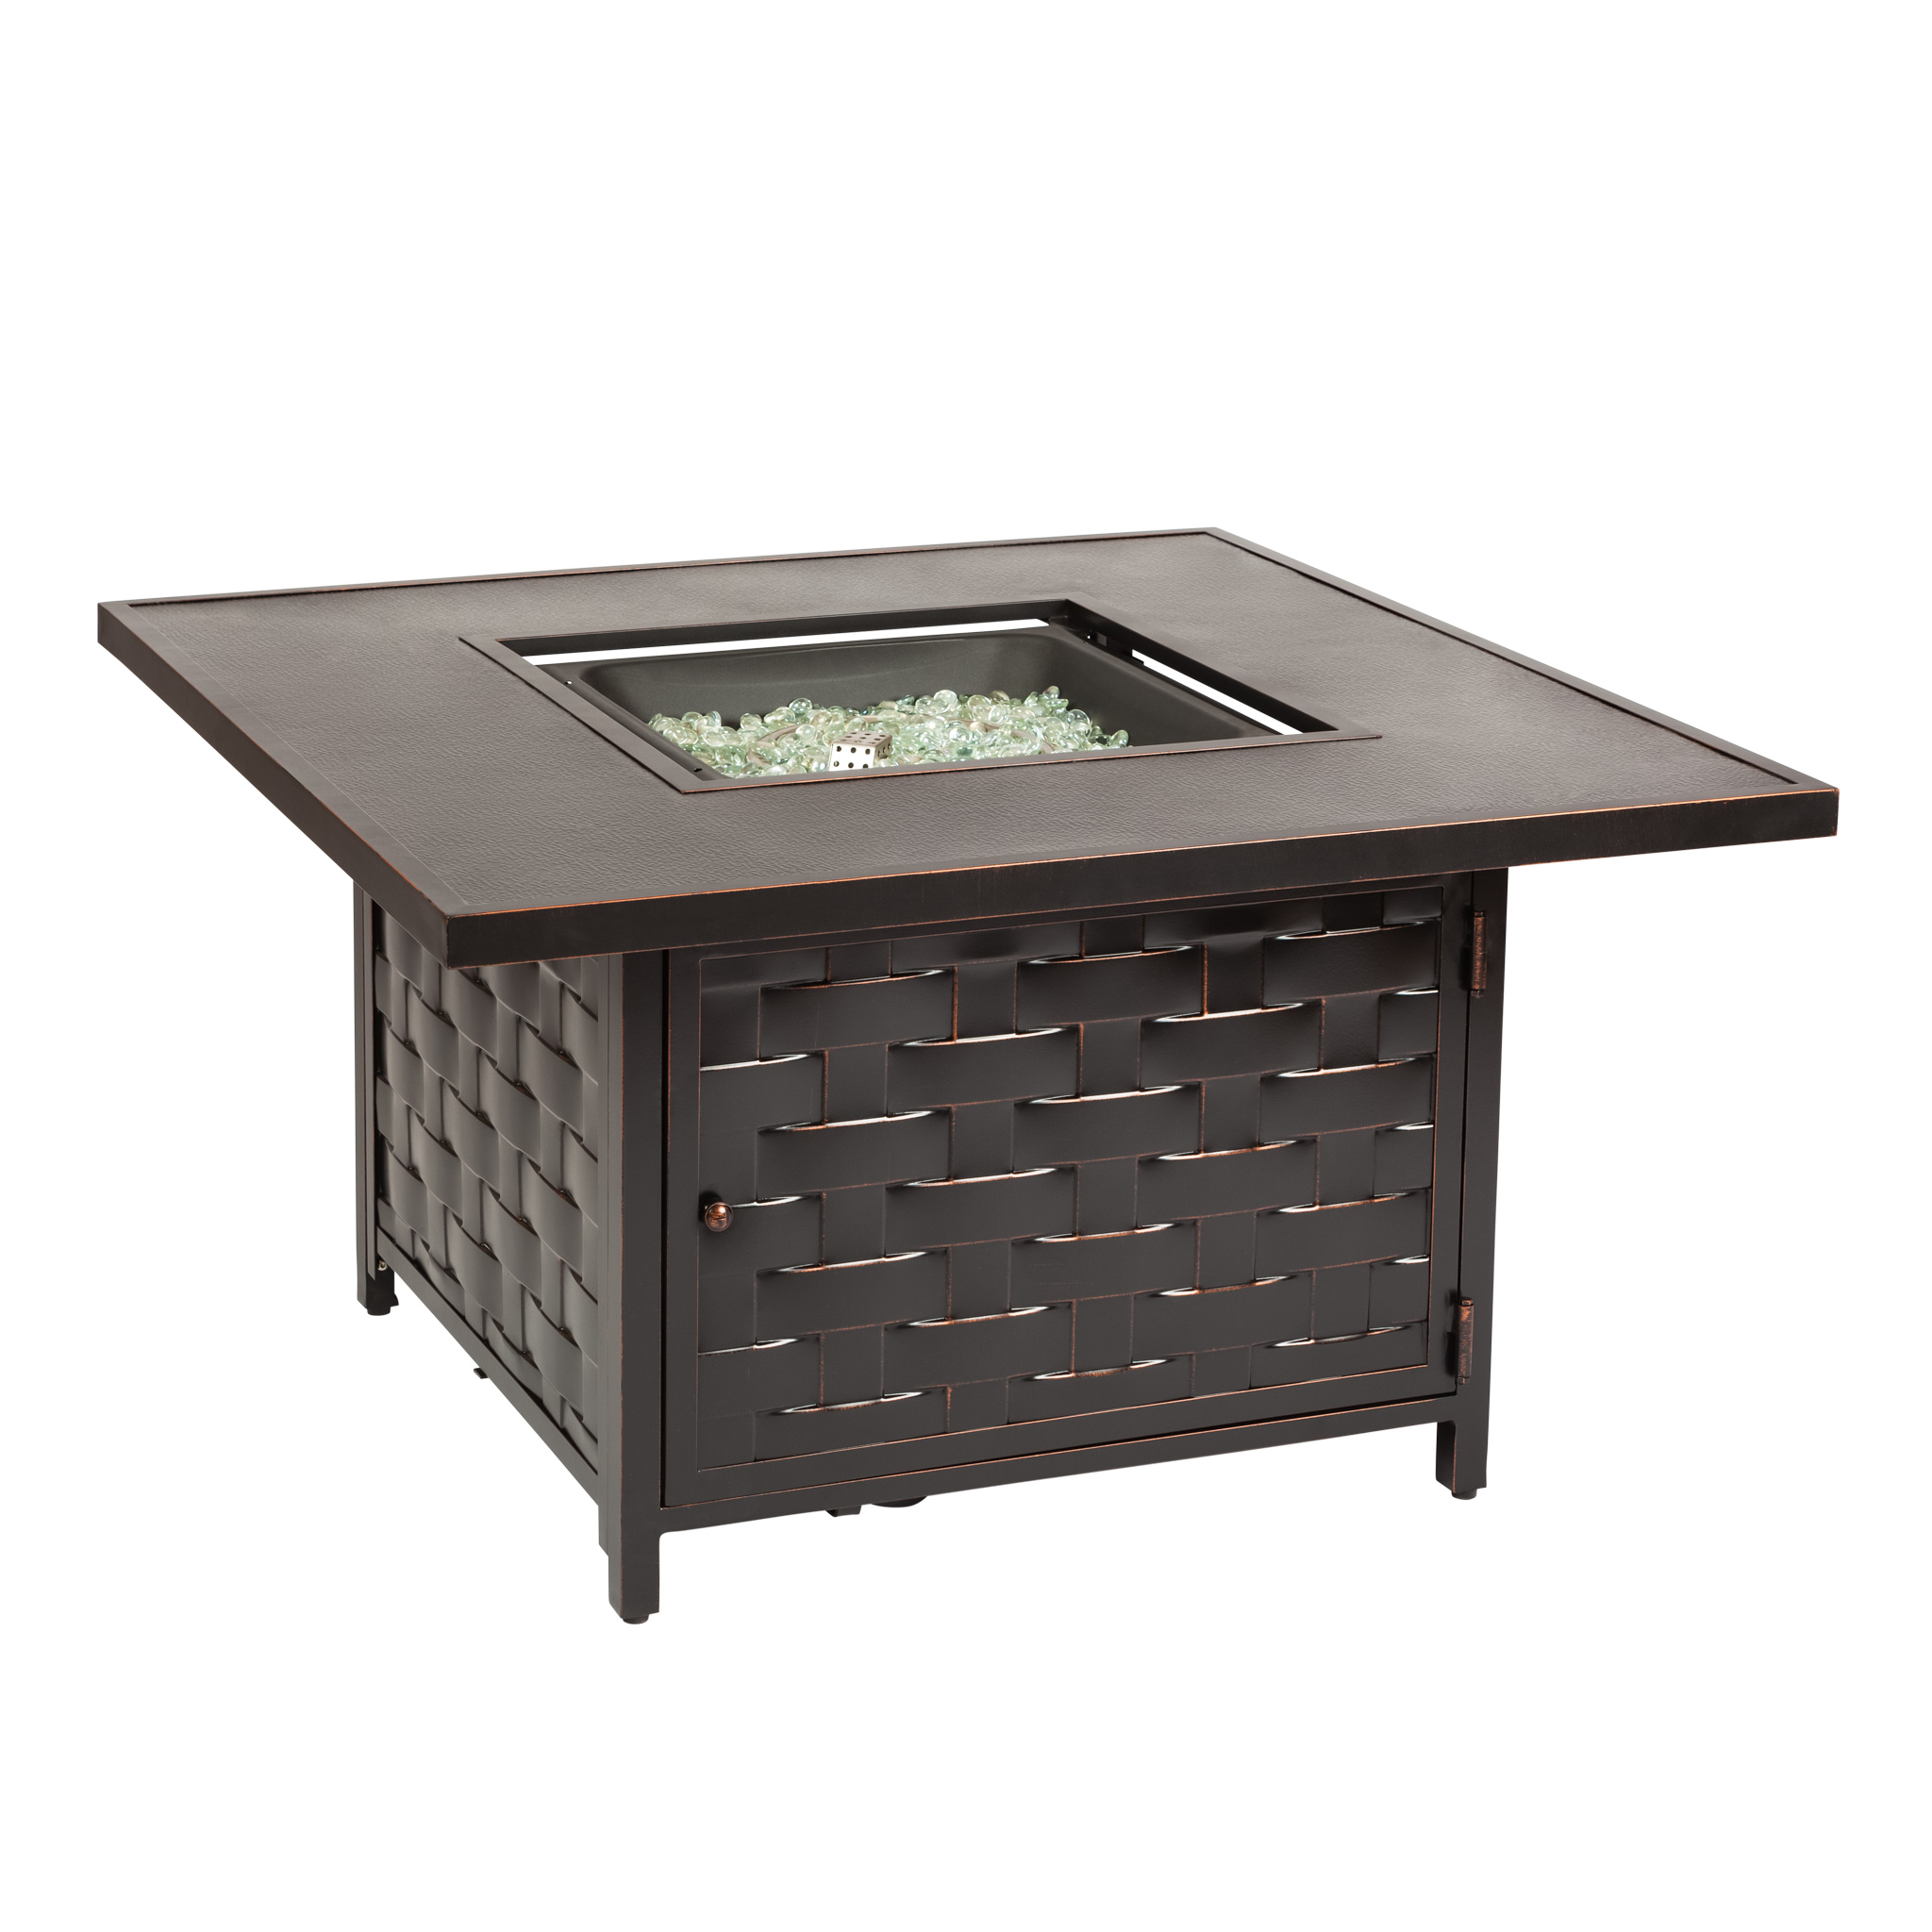 Armstrong Aluminum LPG Fire Pit